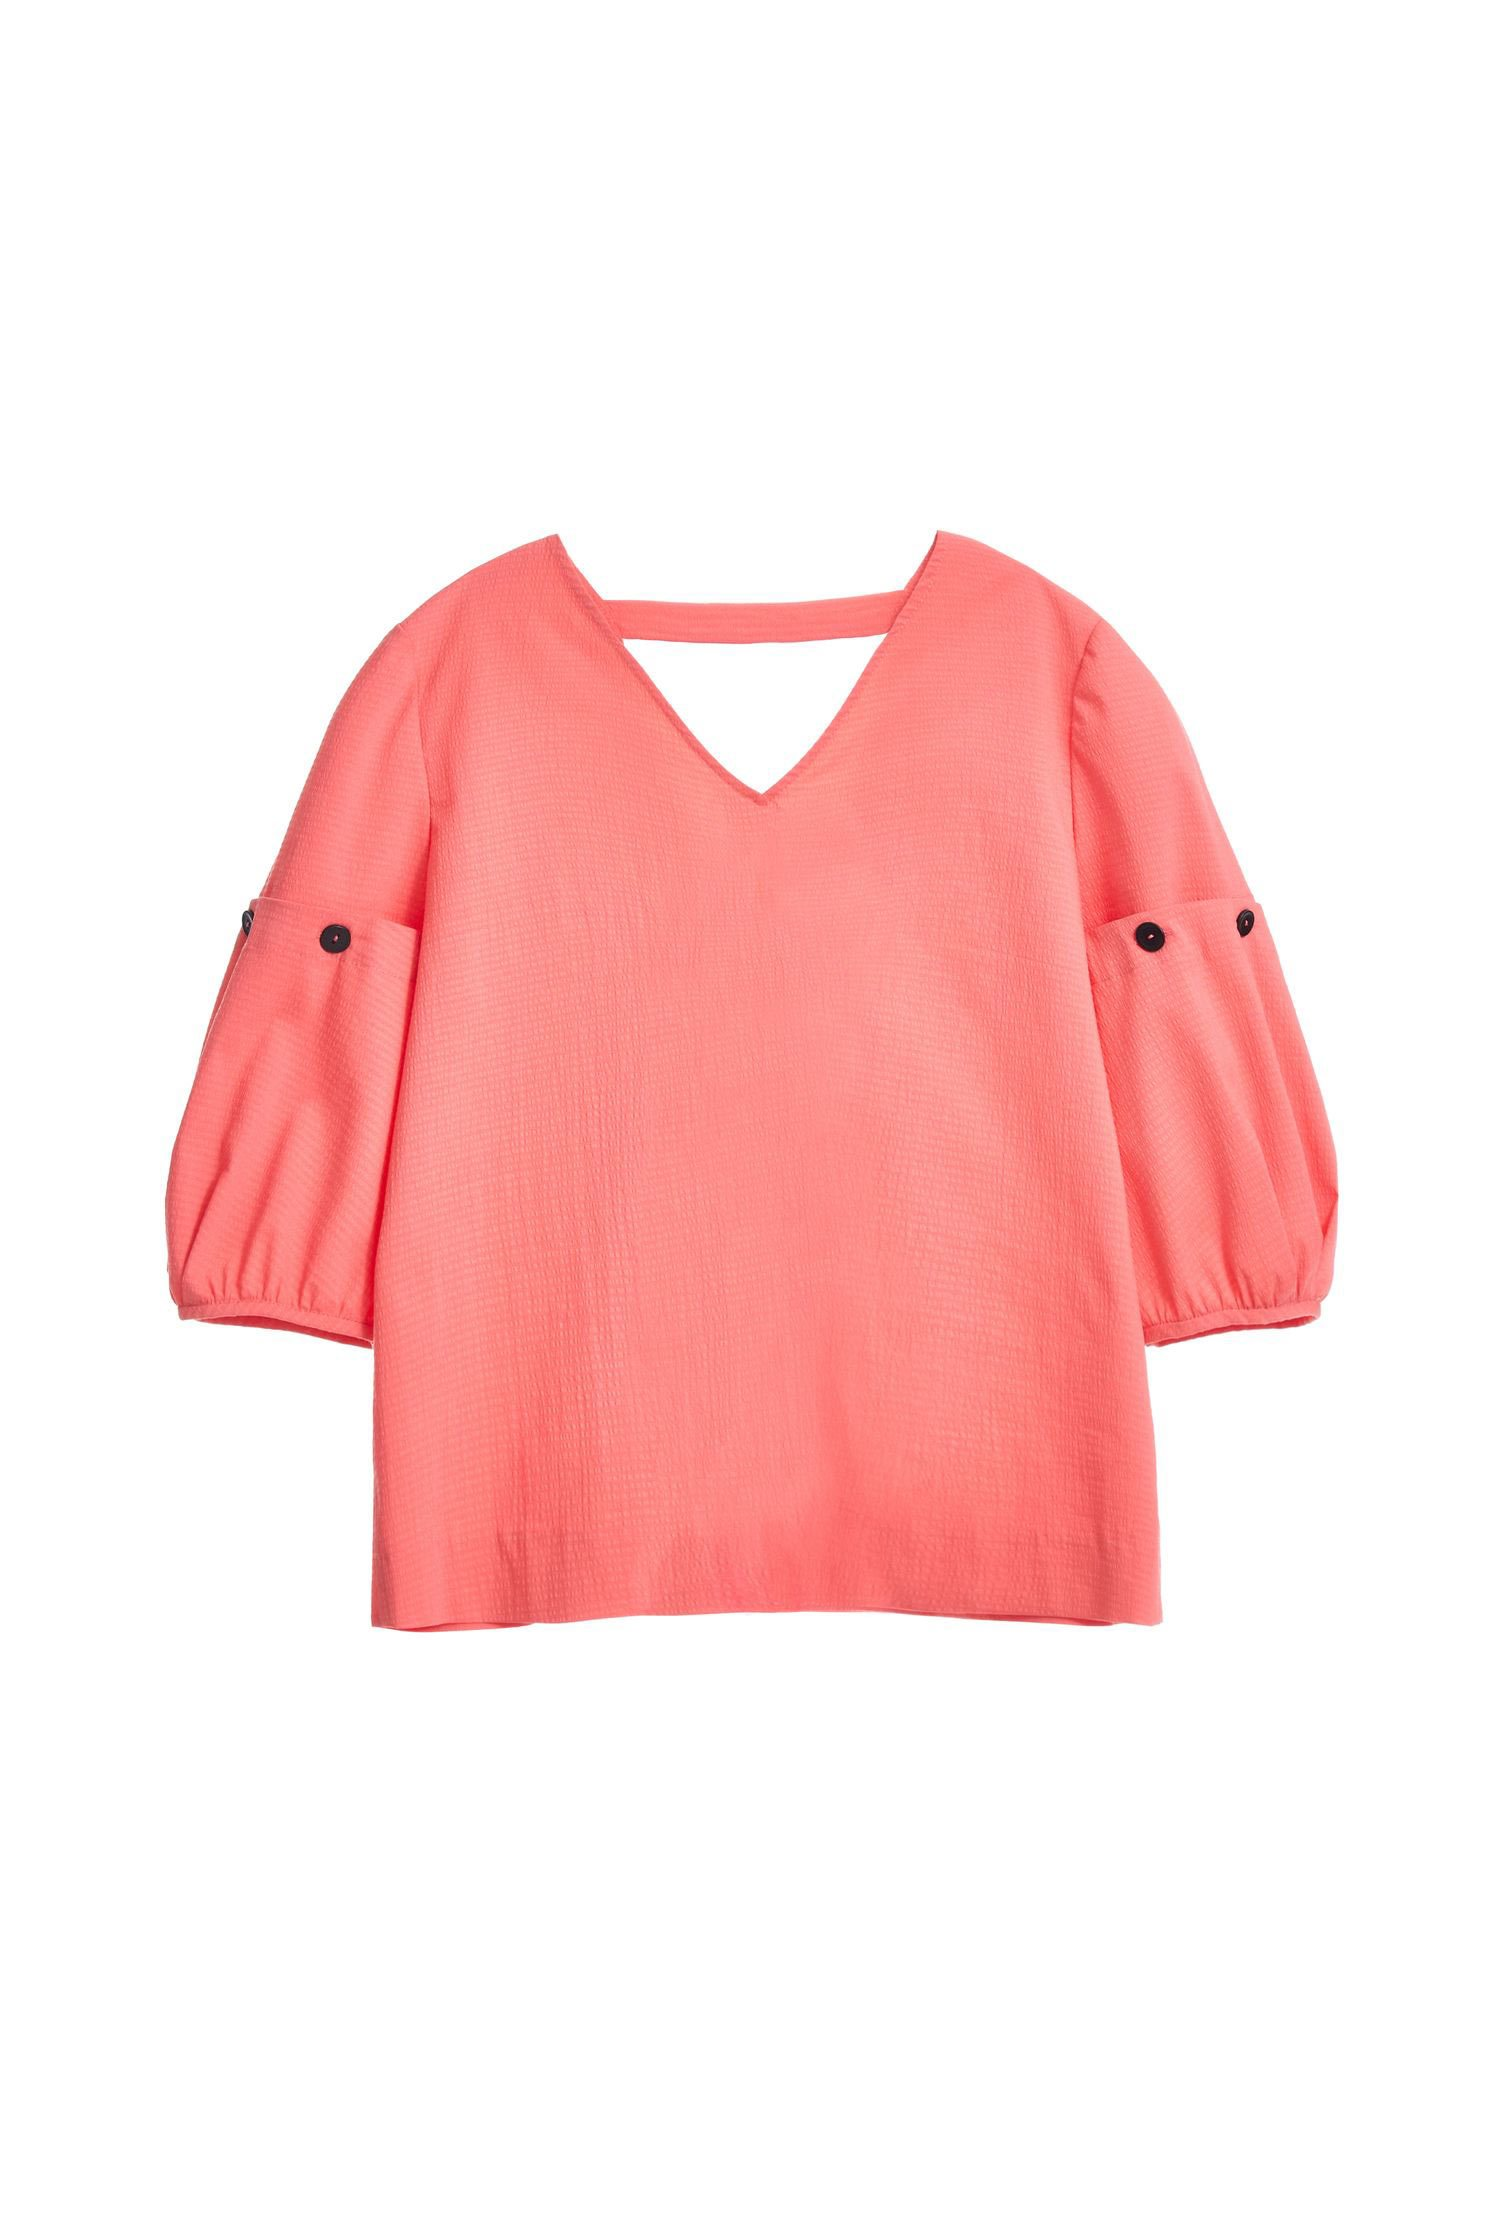 Five-point sleeve top with detachable sleeve